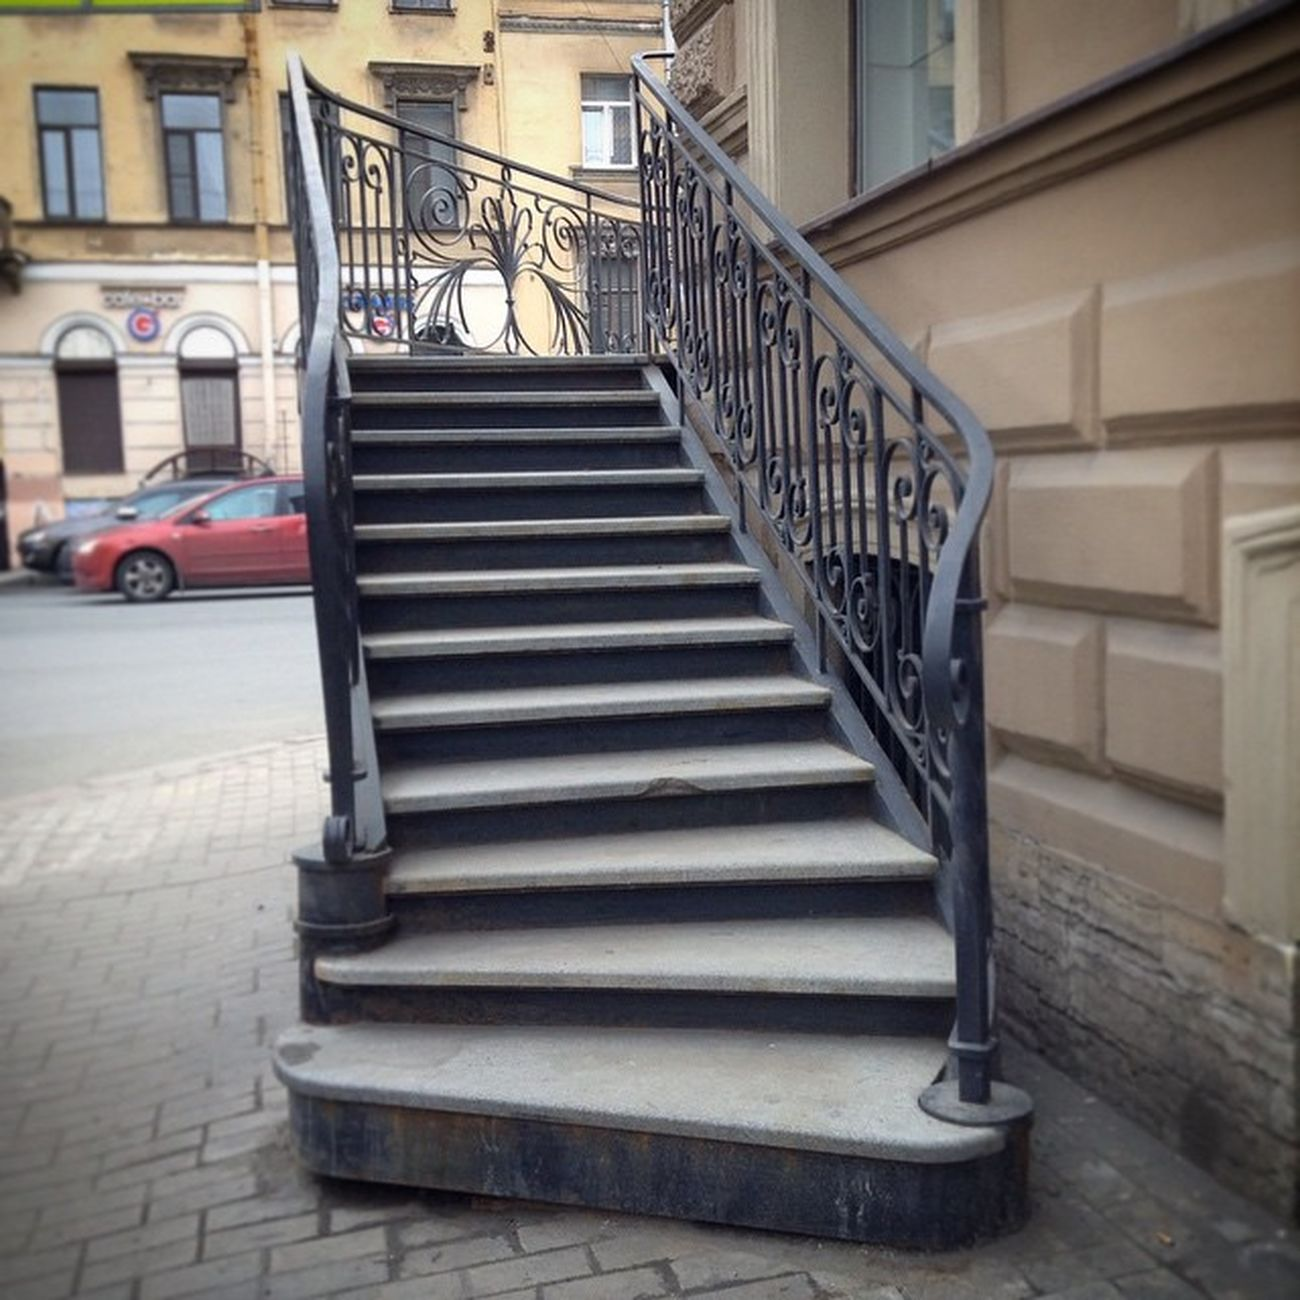 Sanpietroburgo Saintpetersburg Saintpétersbourg Petersburg City Symmetry Geometry Streetview Streetphoto Urbanexploring Urban Up Ig_snapshots Instago Ic_cities Lines Ic_architecture Nothingisordinary Urbex Stairs Ladder Staircase Oldcity Picoftheday Spbgram photo_spb